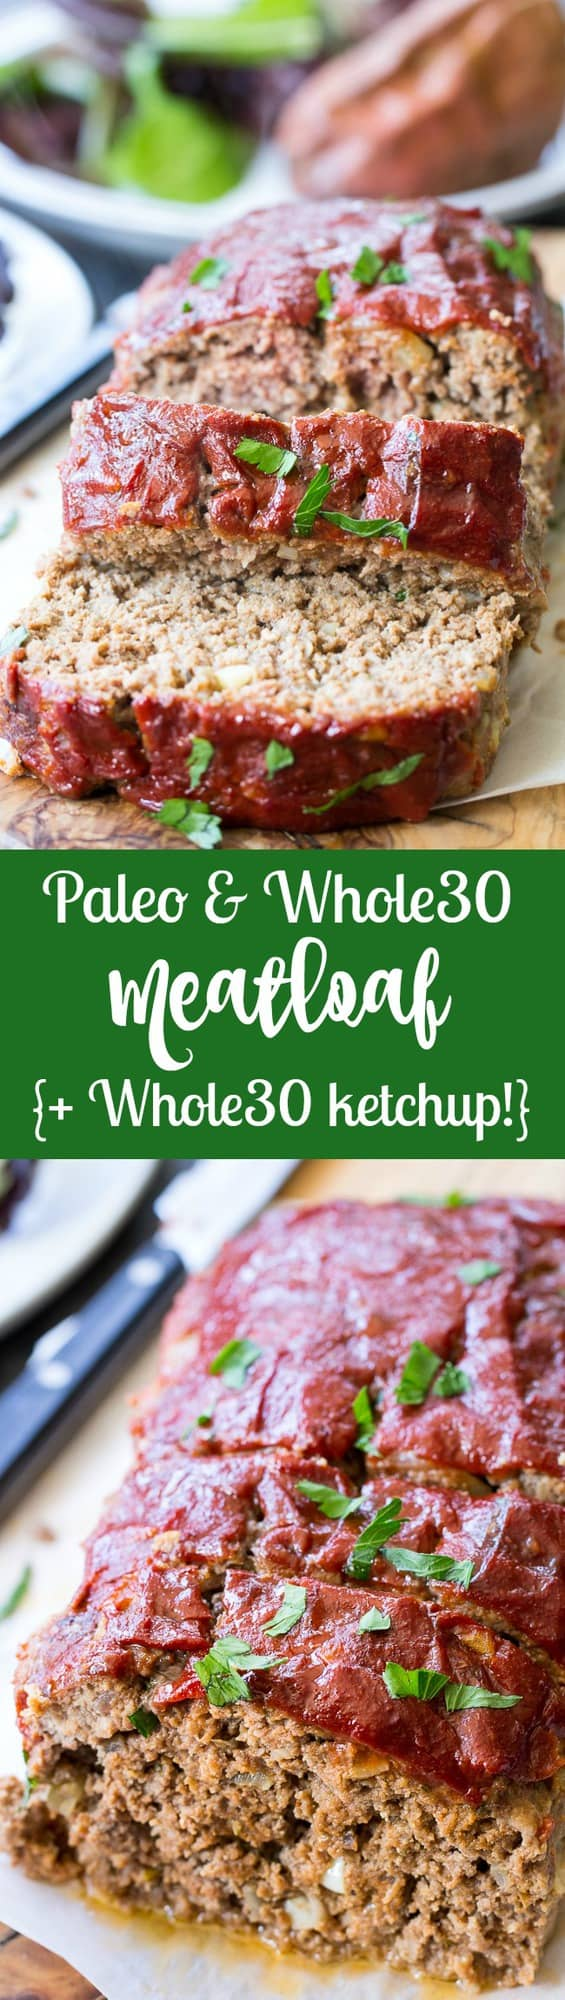 This Whole30 and Paleo meatloaf is packed with classic flavors and topped with Whole30 ketchup sweetened with dates!  It's the ultimate cozy comfort food that everyone will love.  Gluten free grain free, dairy free, no added sugar.  Great Whole30 paleo dinner idea!